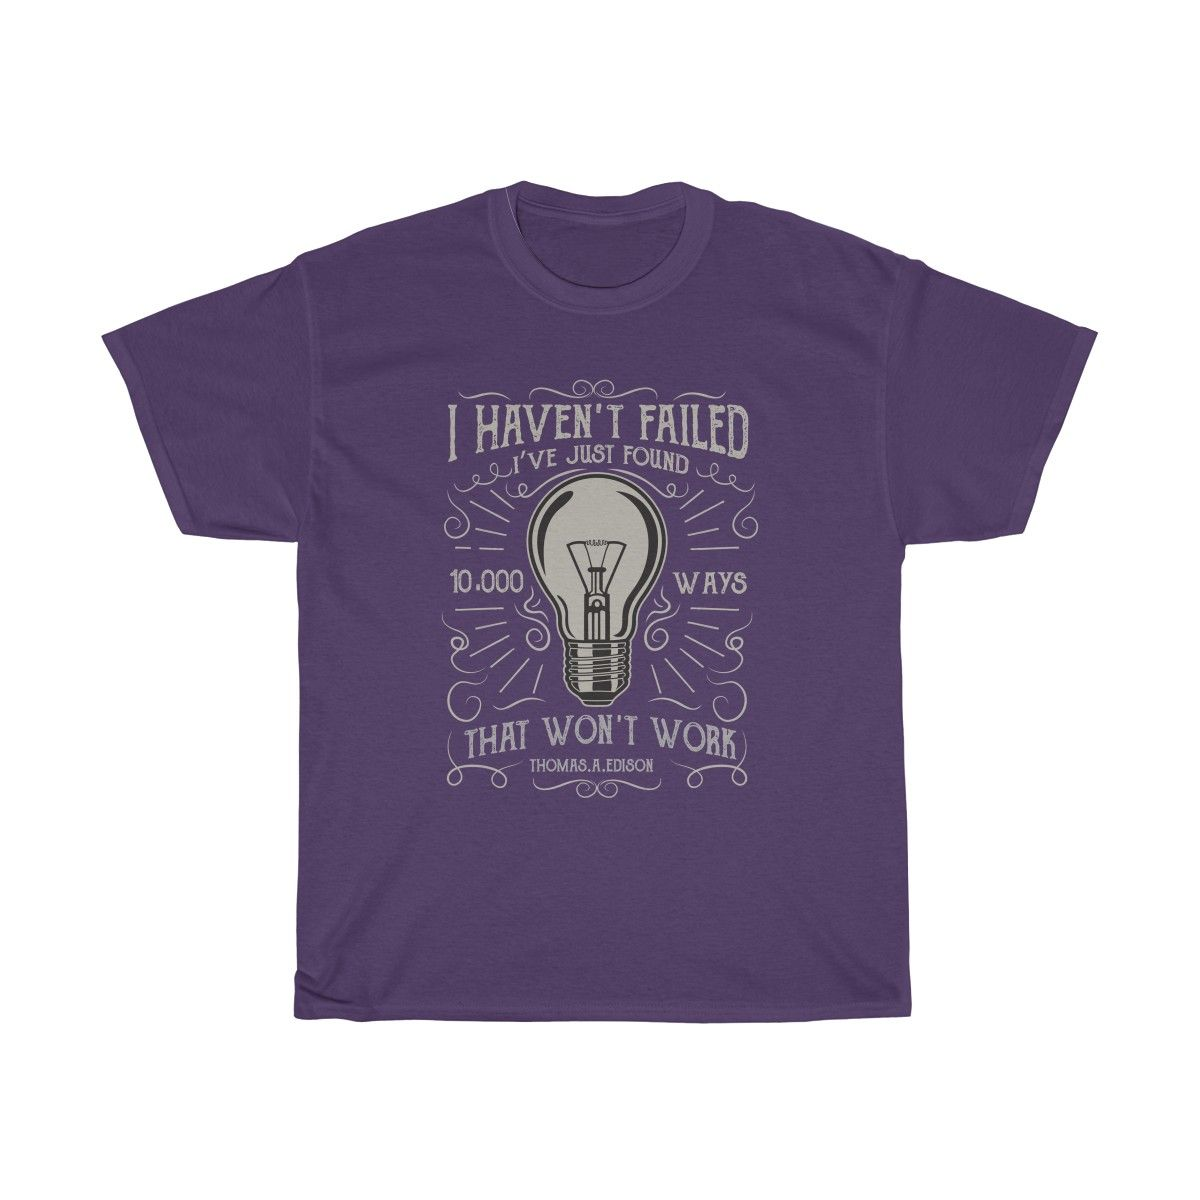 """""""I haven't failed, I've just found 10,000 ways that won't work."""" - Thomas Edison  https://buff.ly/2Phr0vY  #shirts #tees #teesplosion #teesplosions #tshirts #teeshirts #coolshirts #newshirts #newdesigns #tshirtdesigns #apparel #appareldesign #customshirts #appareldesigner #shoppic.twitter.com/RB0llpLOYG"""